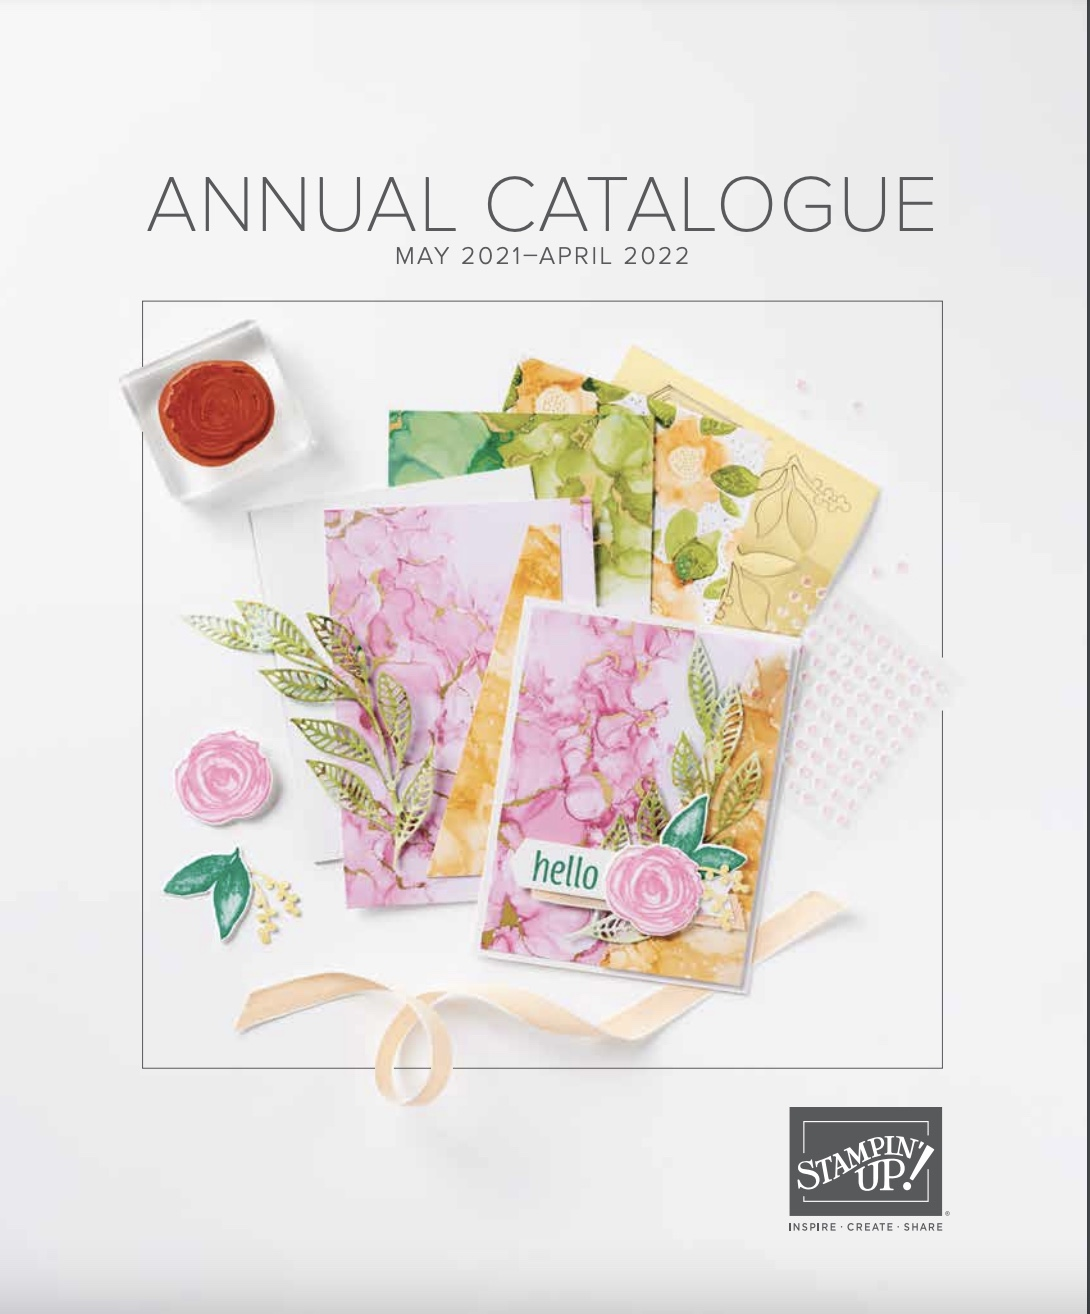 Stampin' Up! Annual Catalogue 2021-2022